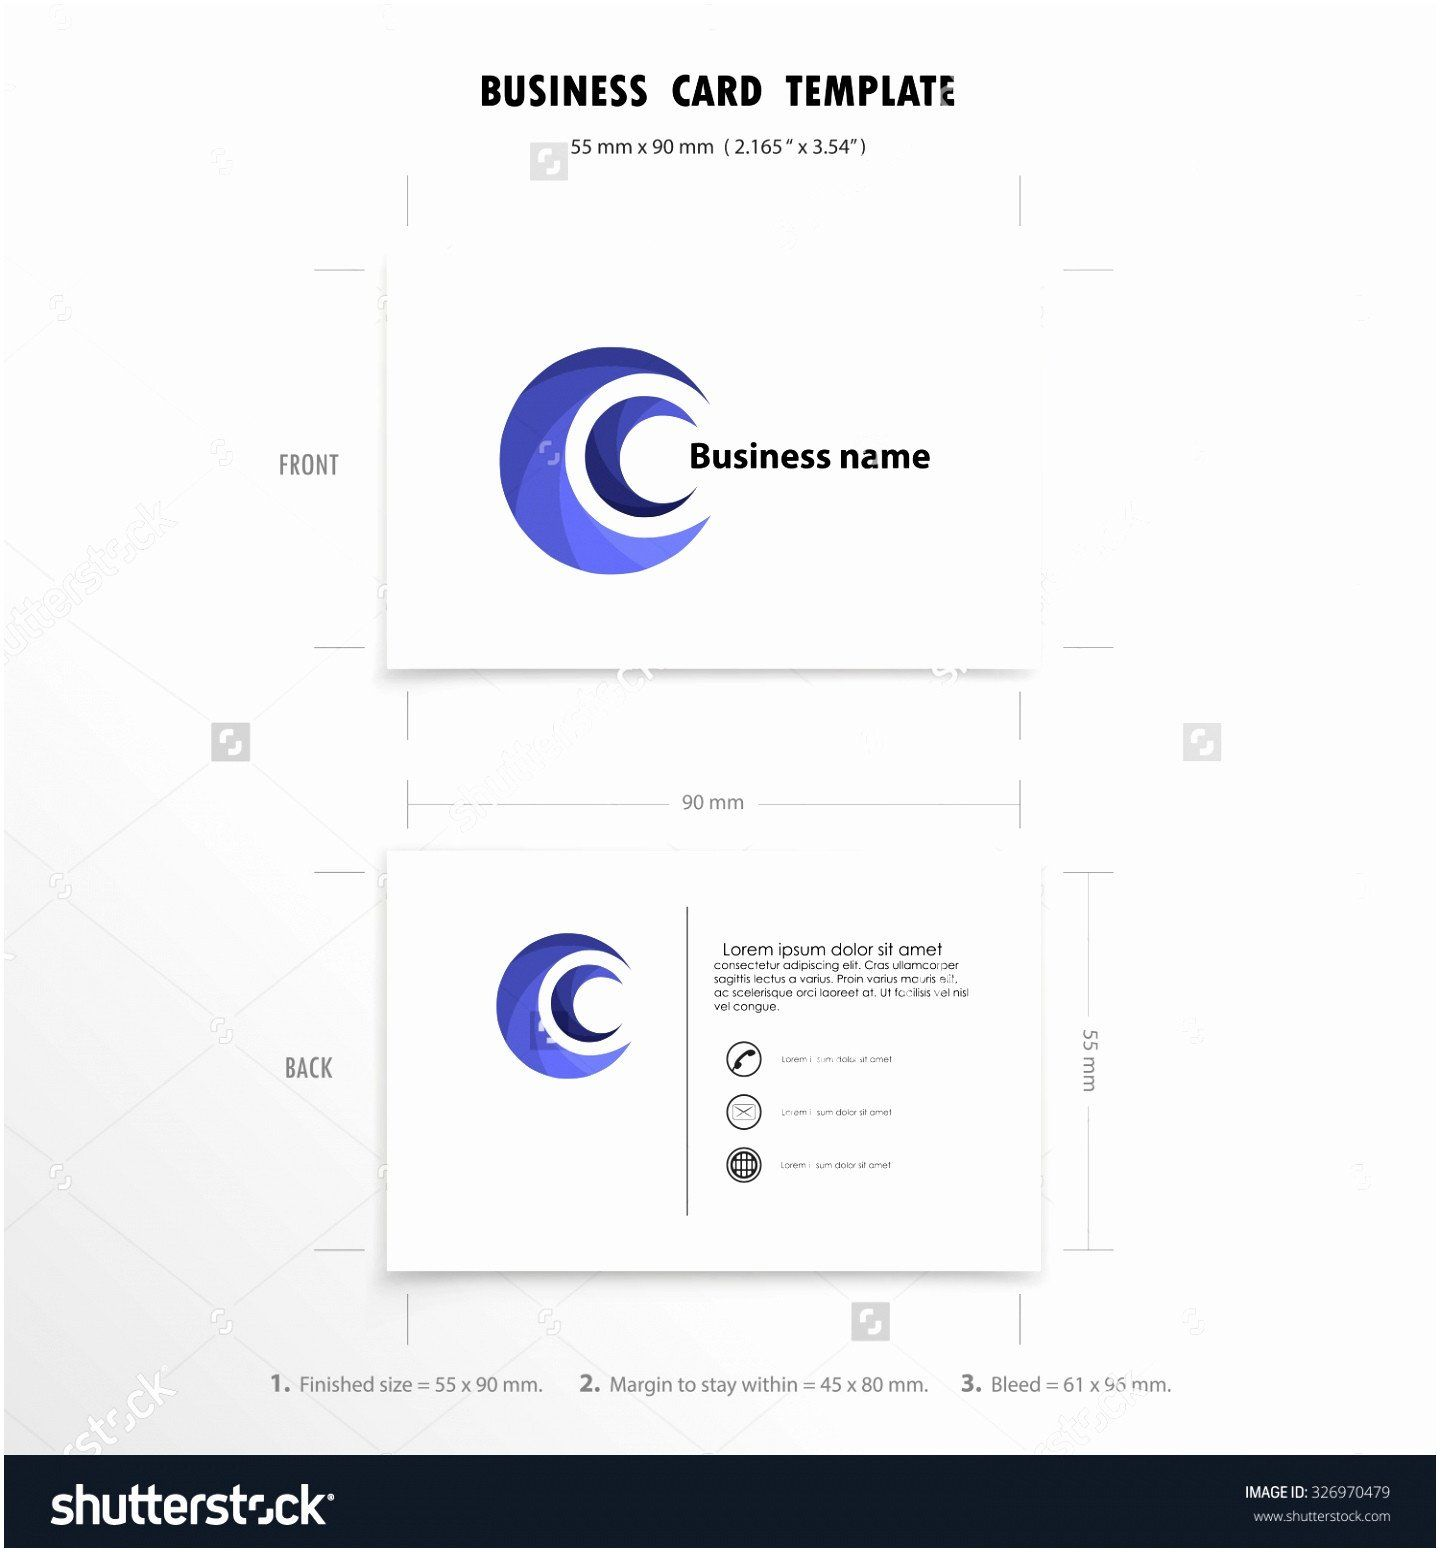 Excel Business Card Template 8 Name Card Size Template Qooye Business Card Template Card Template Free Business Card Templates